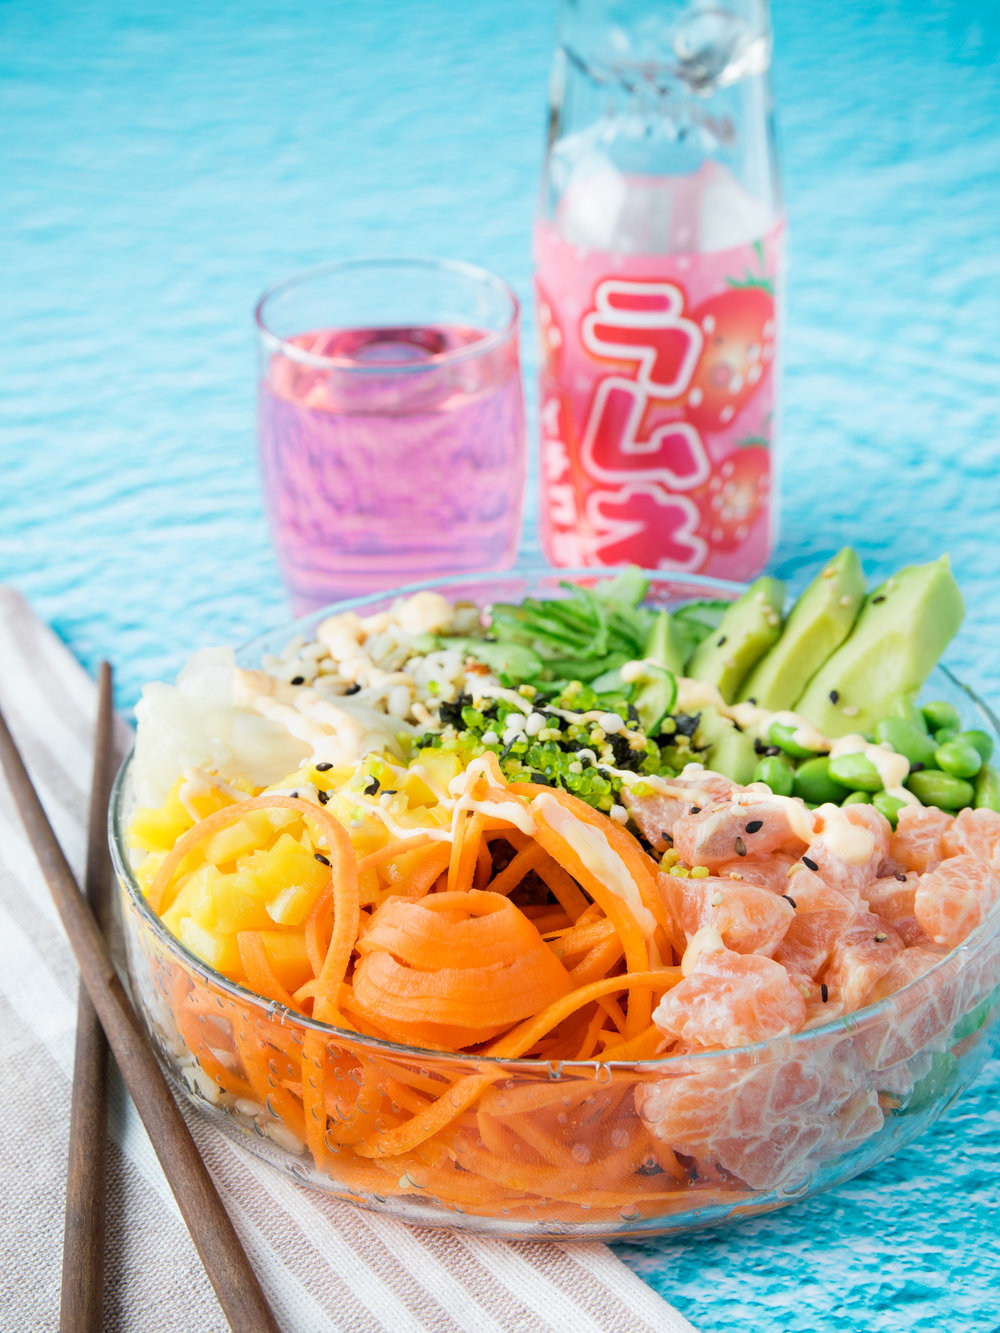 Poke bowl Photo et stylisme : Hubert Cormier